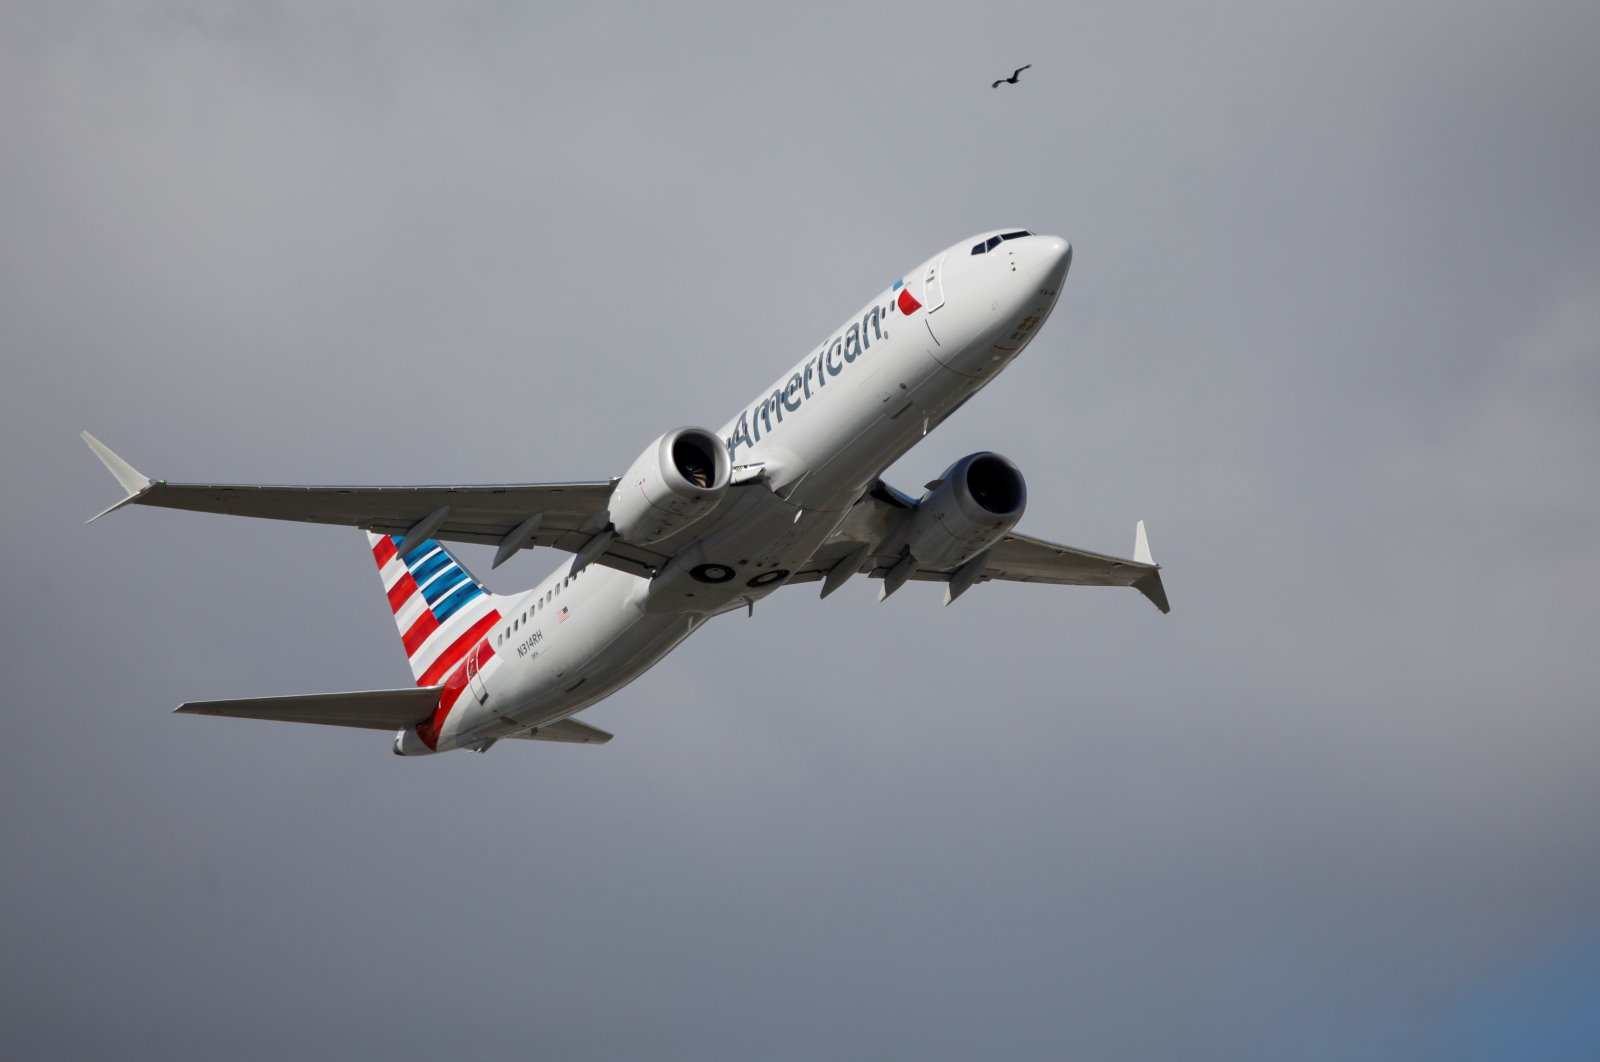 American Airlines flight 718, the first U.S. Boeing 737 MAX commercial flight since regulators lifted a 20-month grounding in November, takes off from Miami, Florida, U.S. on Dec. 29, 2020. (Reuters Photo)